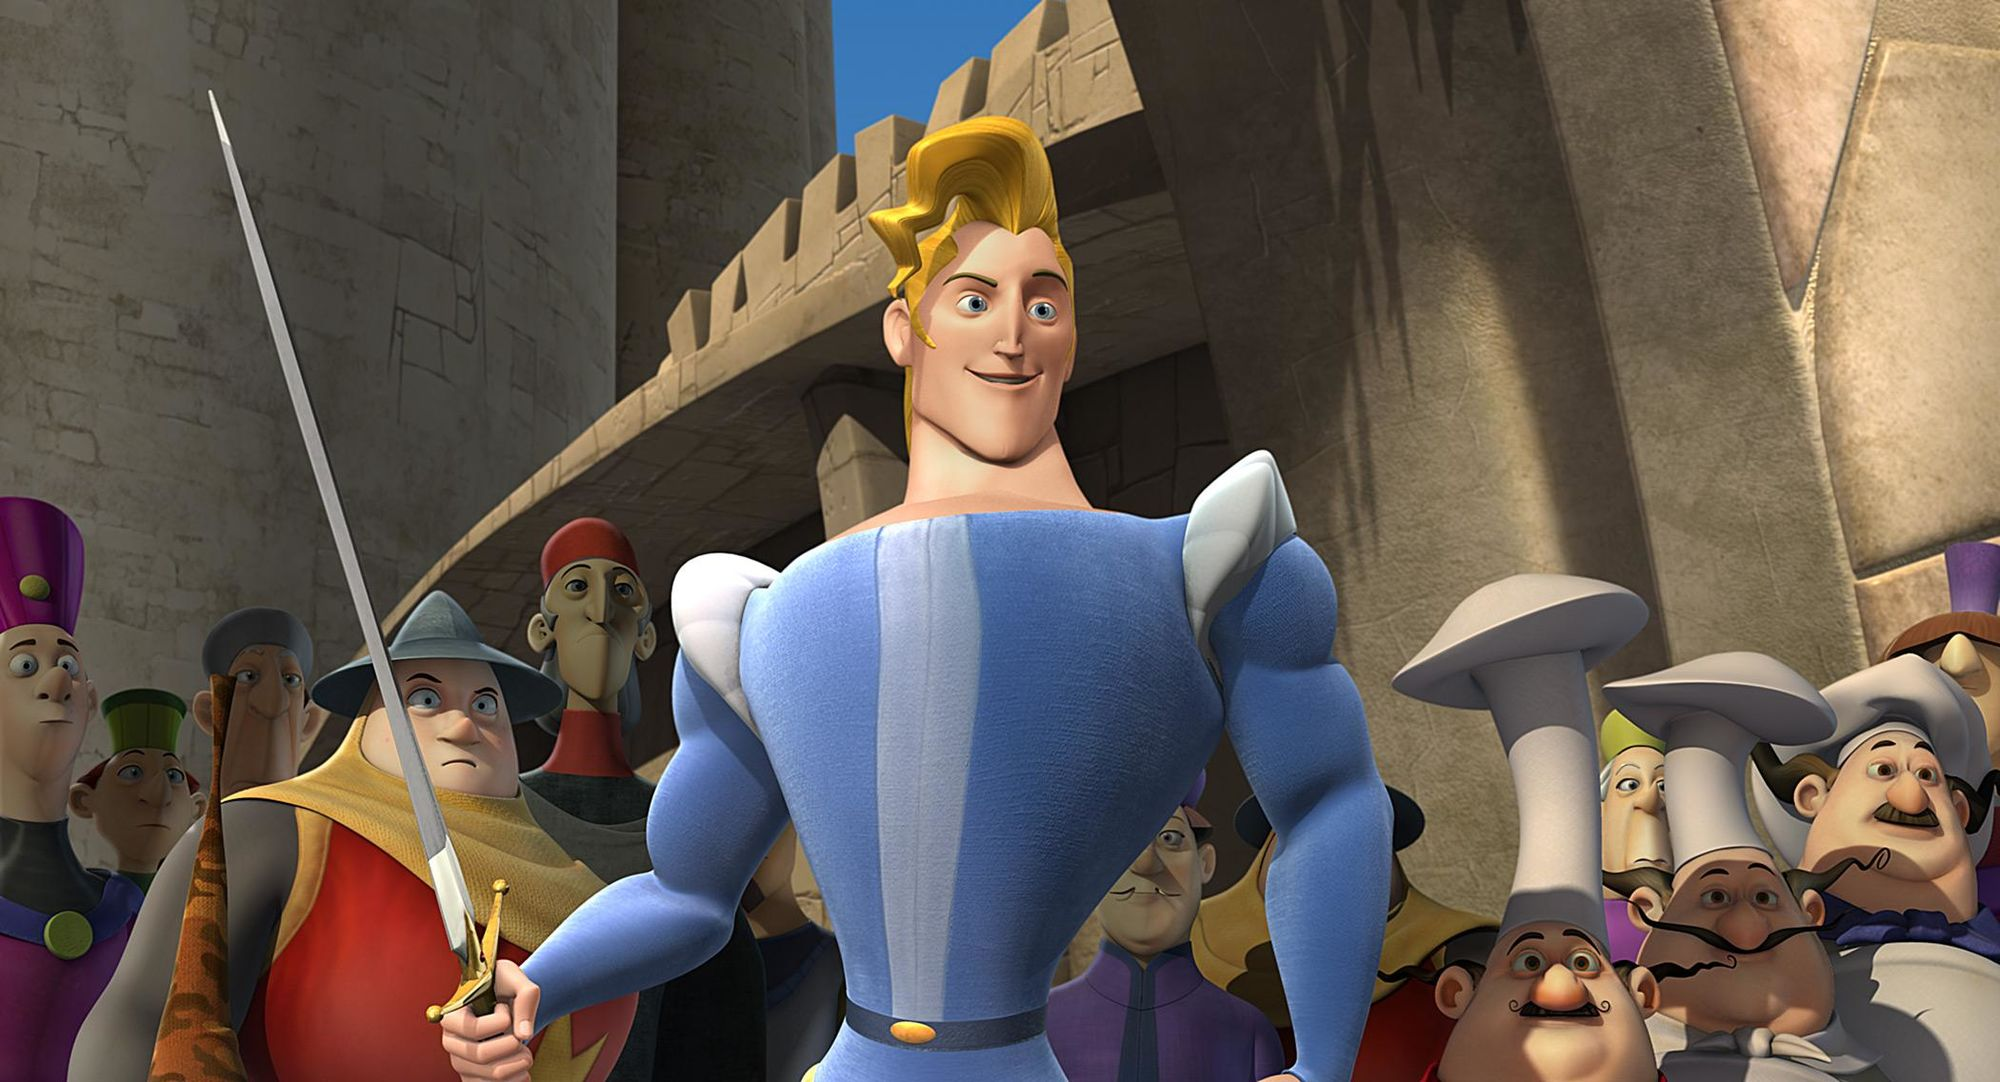 Prince Humperdink (Happily Never After)